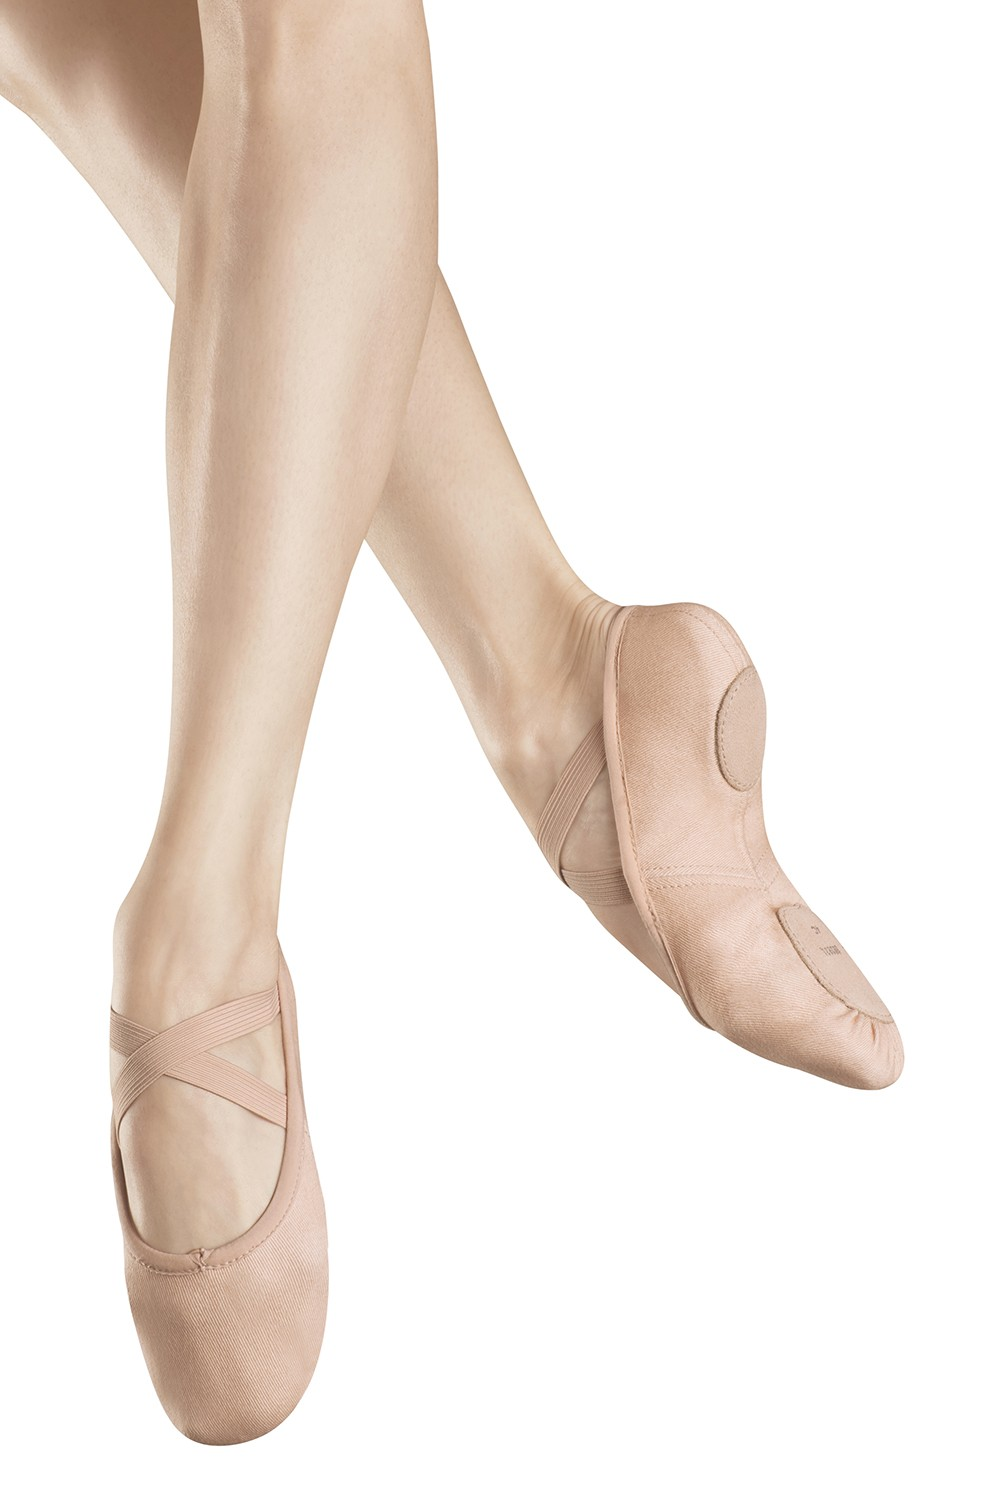 Zenith - Niñas Girl's Ballet Shoes